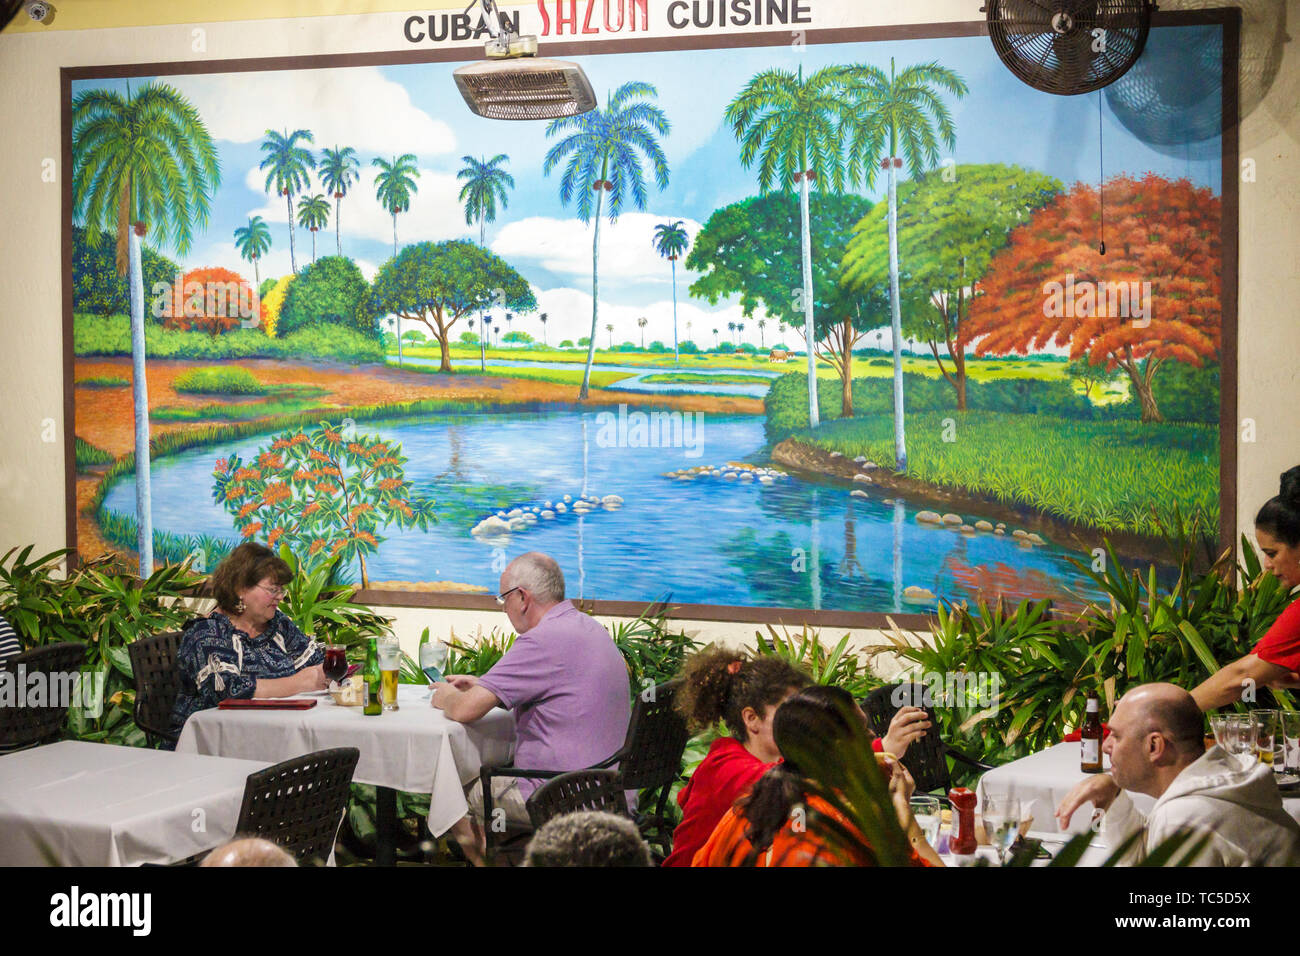 Florida, Miami Beach, North Beach, Collins Avenue, Sazon Cuban Cuisine, restaurant restaurants food dine dining eating out casual cafe cafes, bistro b Stock Photo